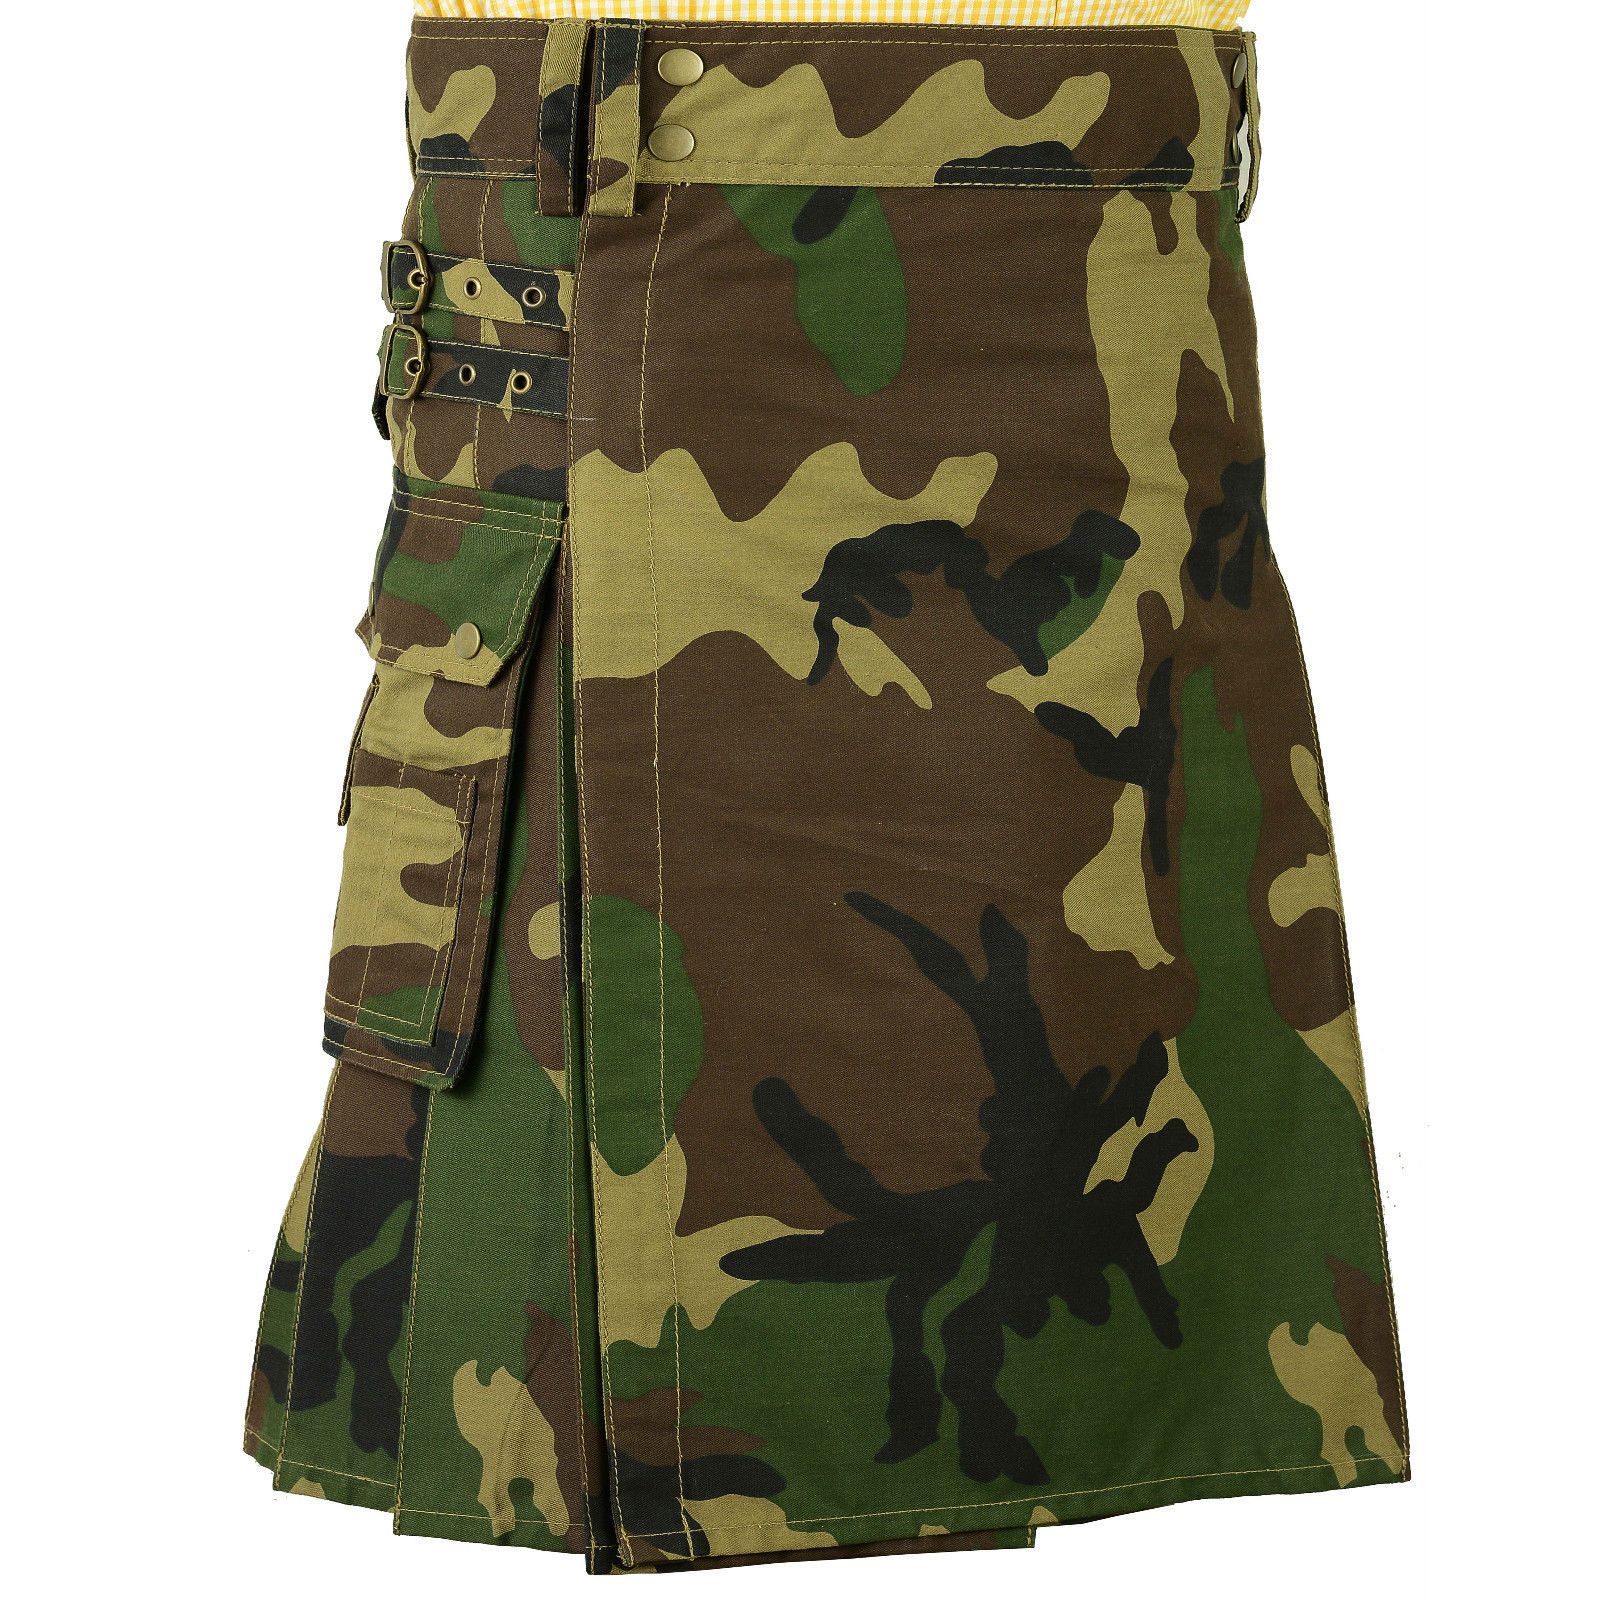 Deluxe-Army-Tartan-Goth-Camo-Kilt-Front